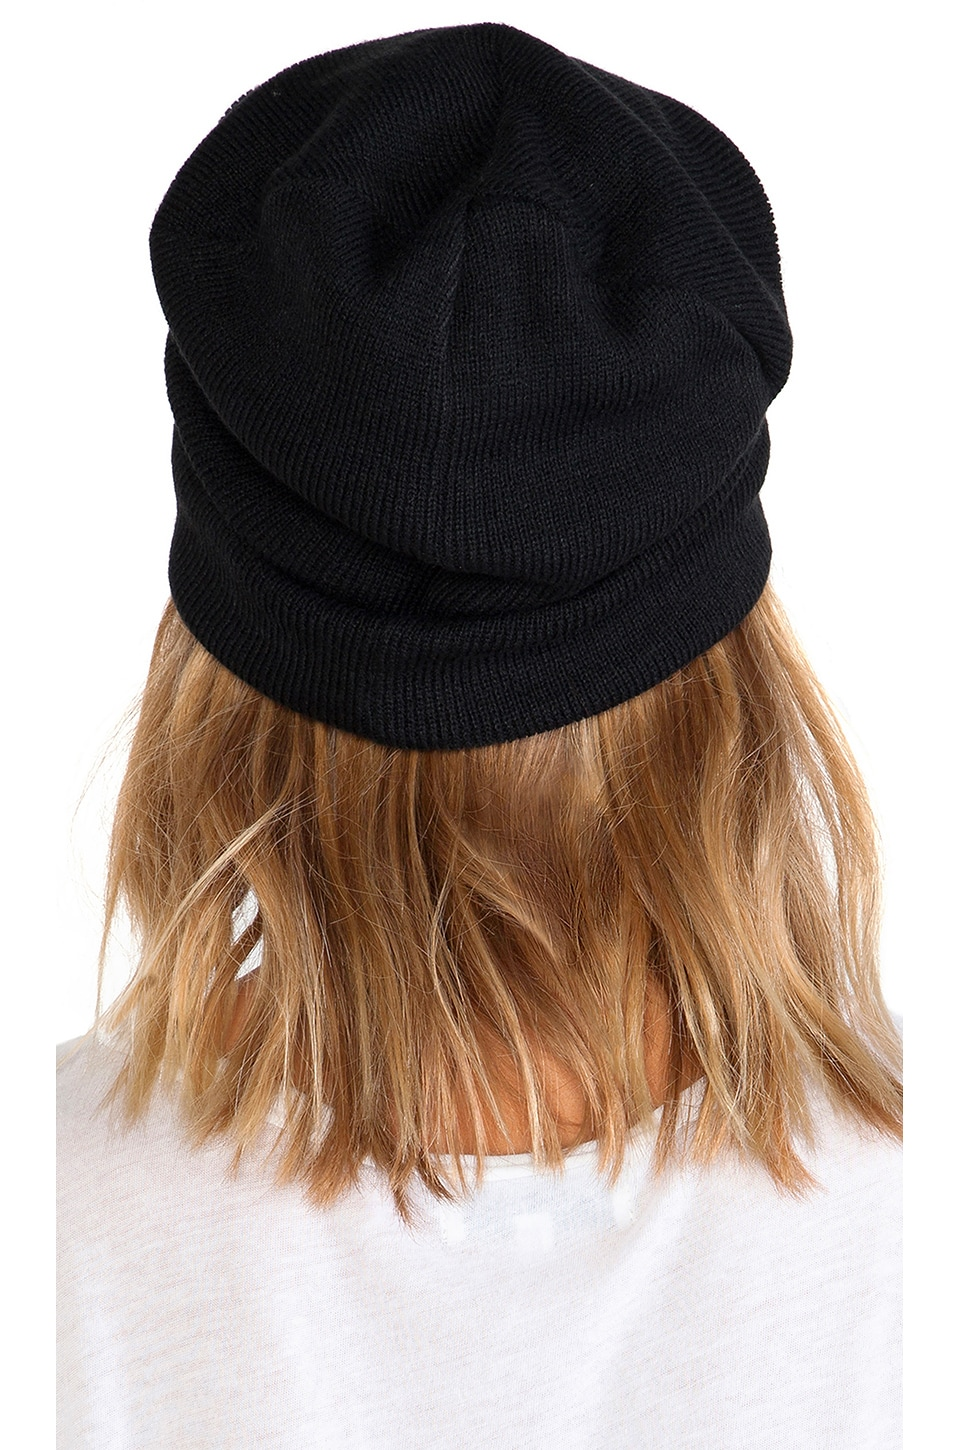 Plush Barca Slouchy Hat w/ Fleece Lining in Black